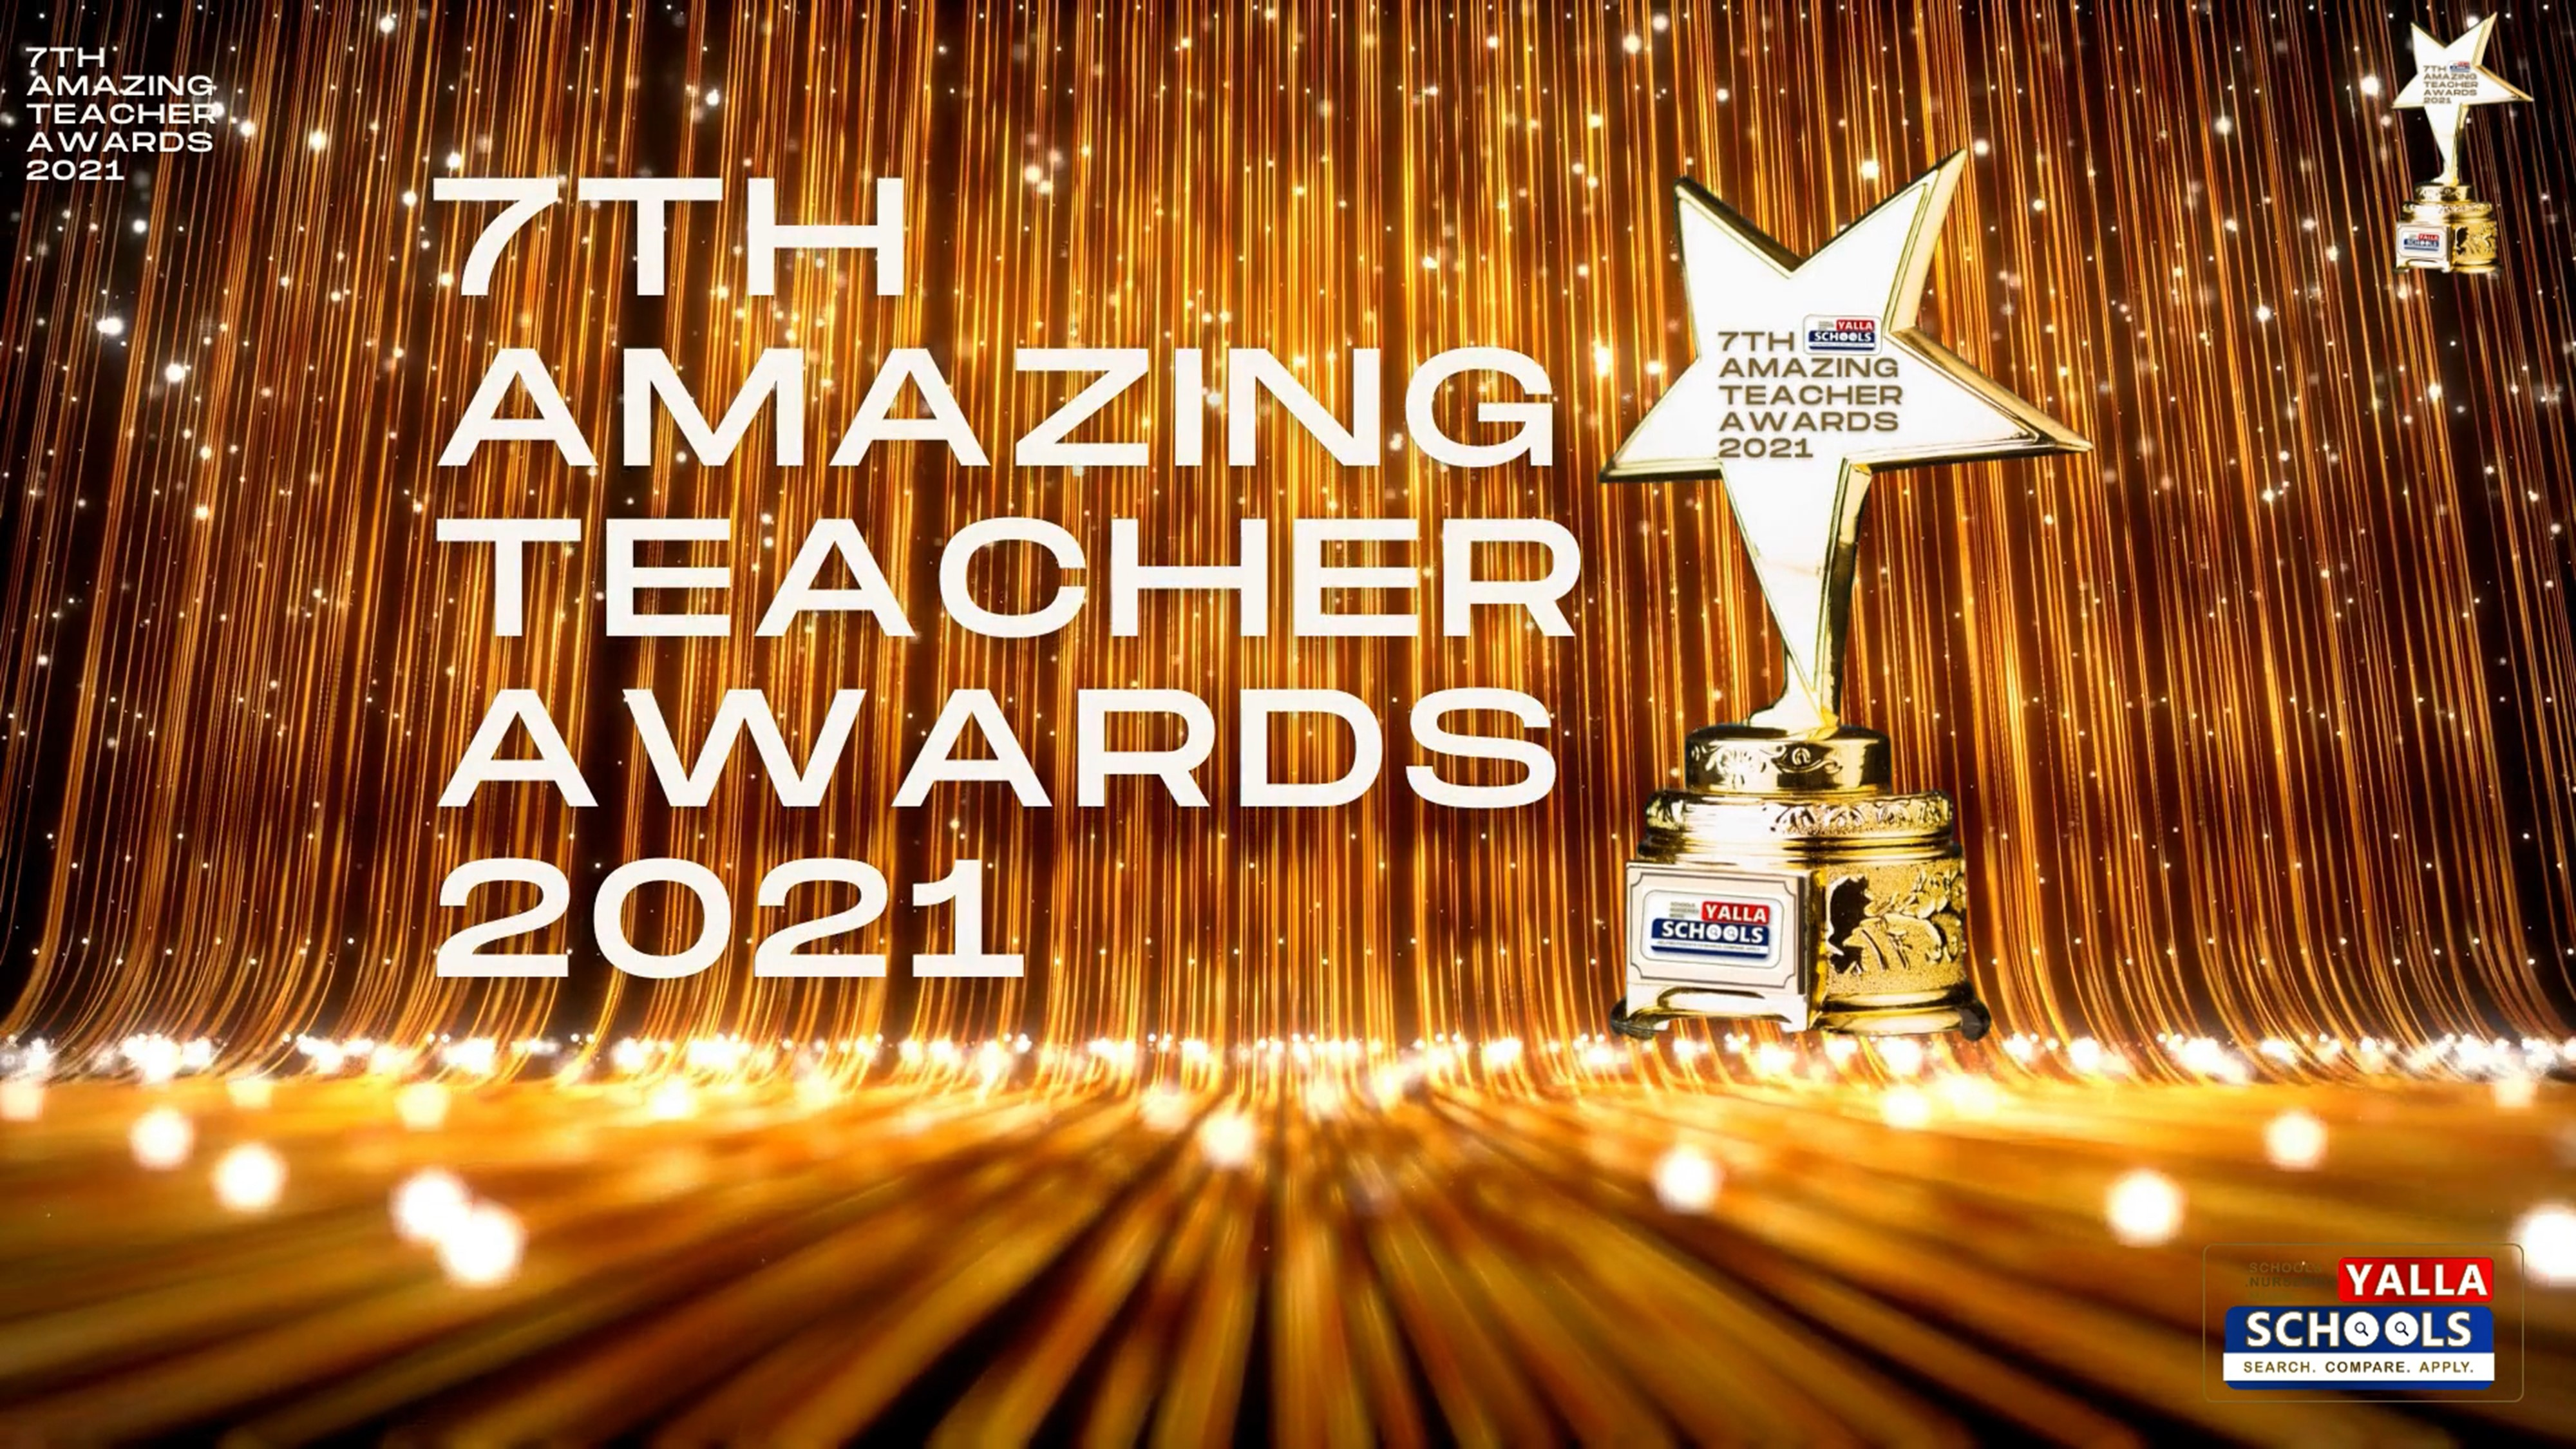 7th_Amazing_Teacher_Awards_2021_-_We_See_You_We_Salute_You_We_Celebrate_You1